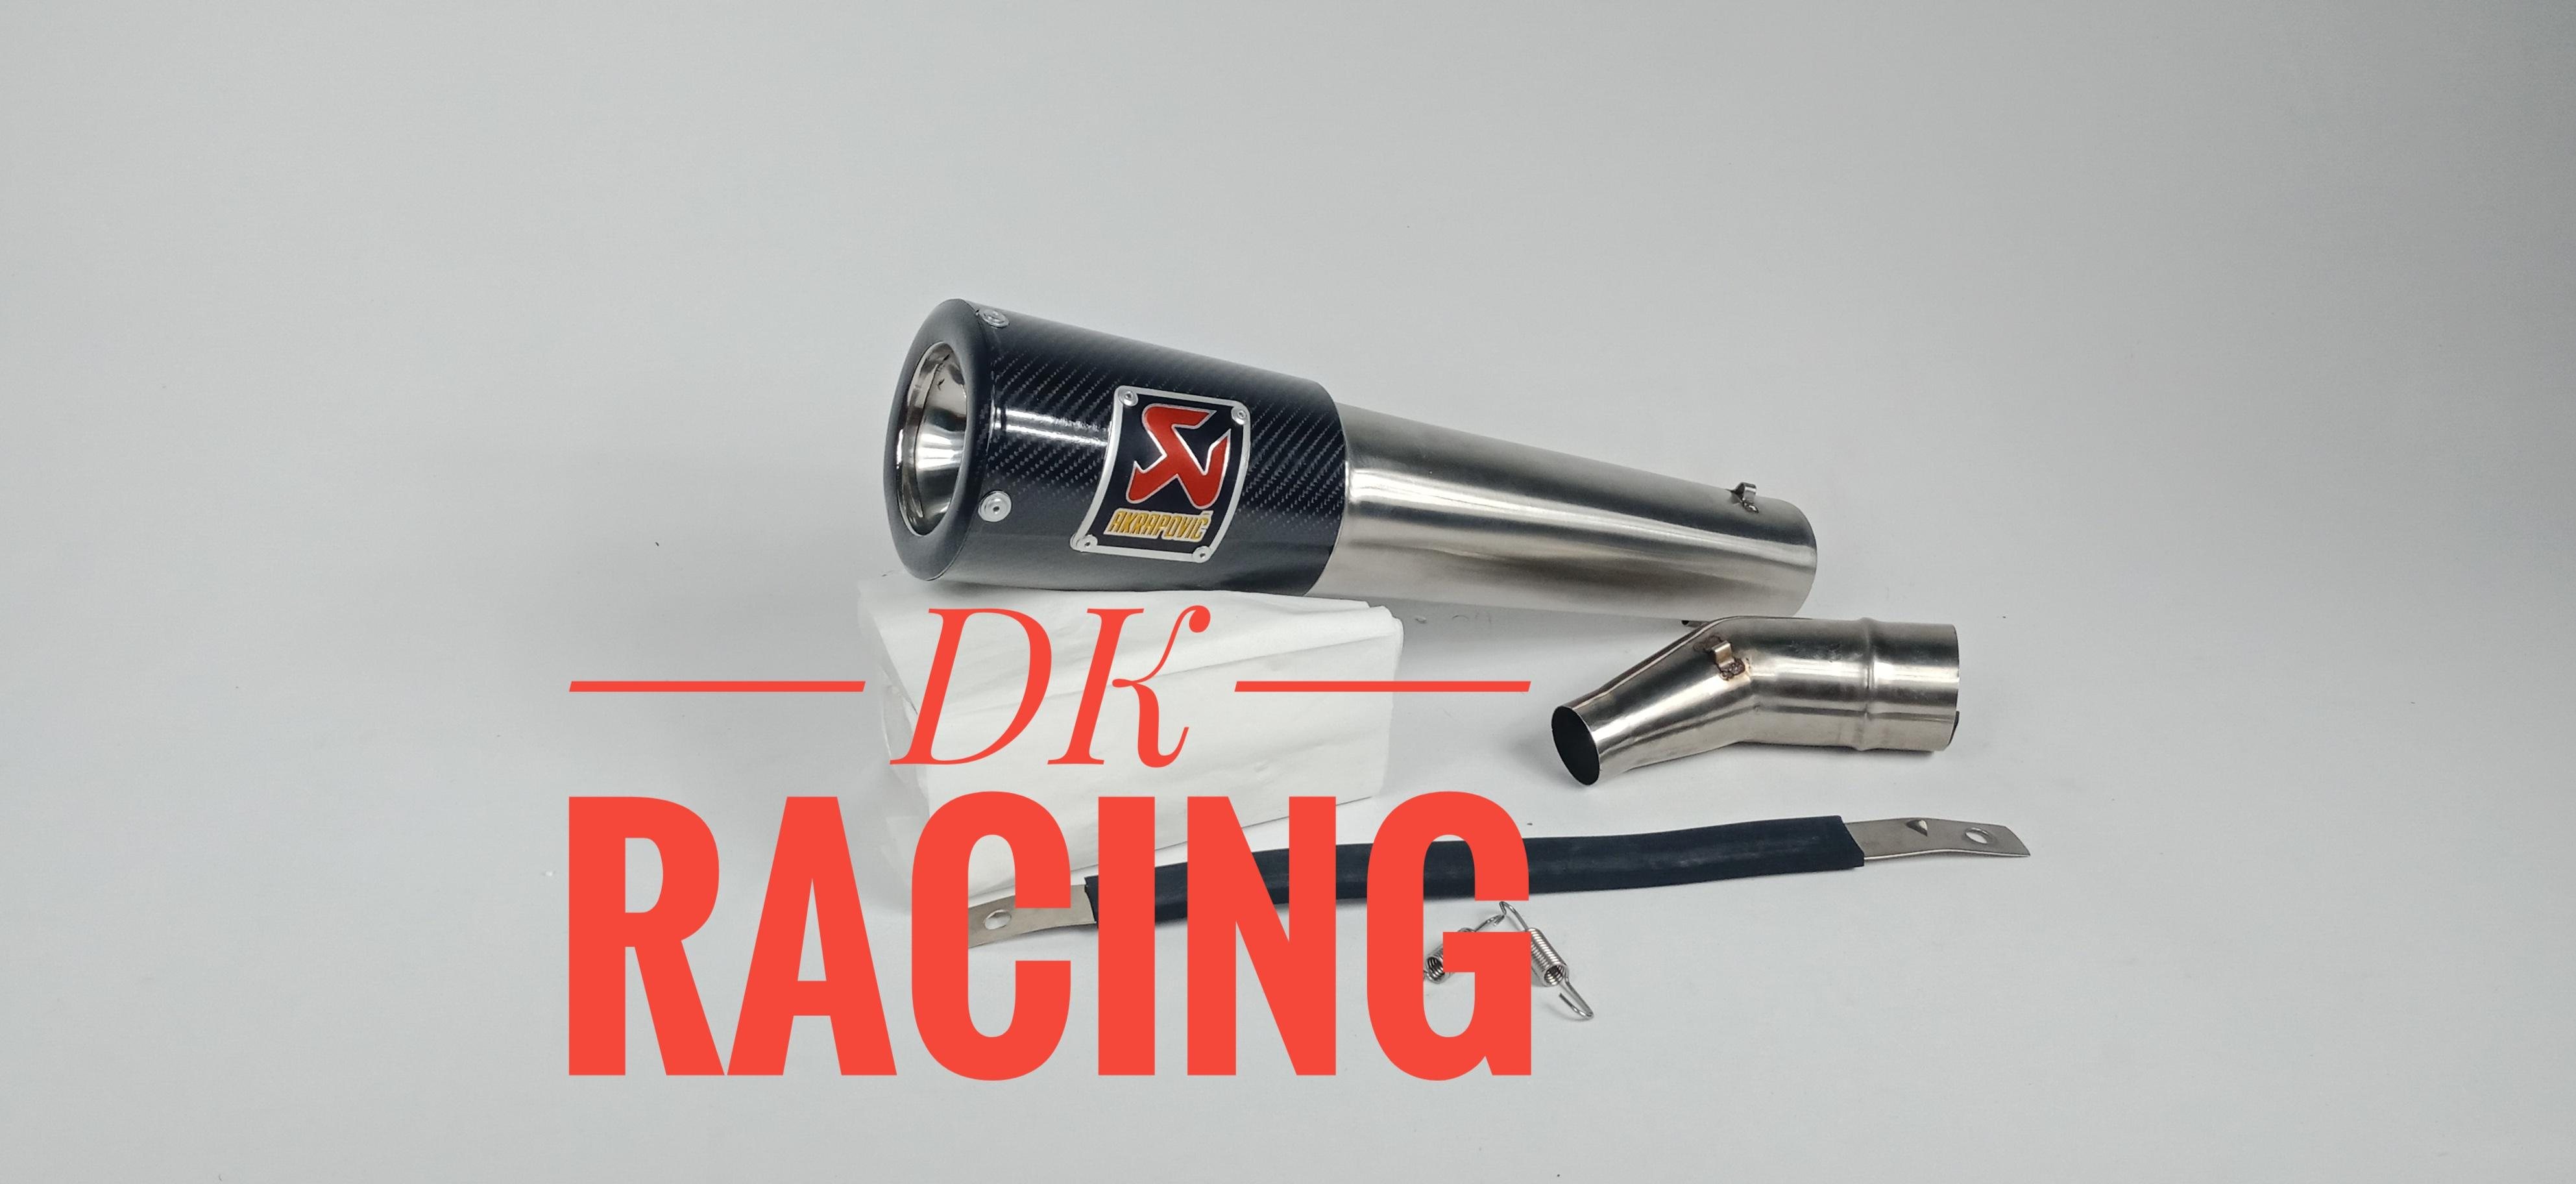 Knalpot Racing Honda Cbr 250 Cbu Thailand Slip On Akrapovic Glass Carbon By Dk Racing Bekasi.